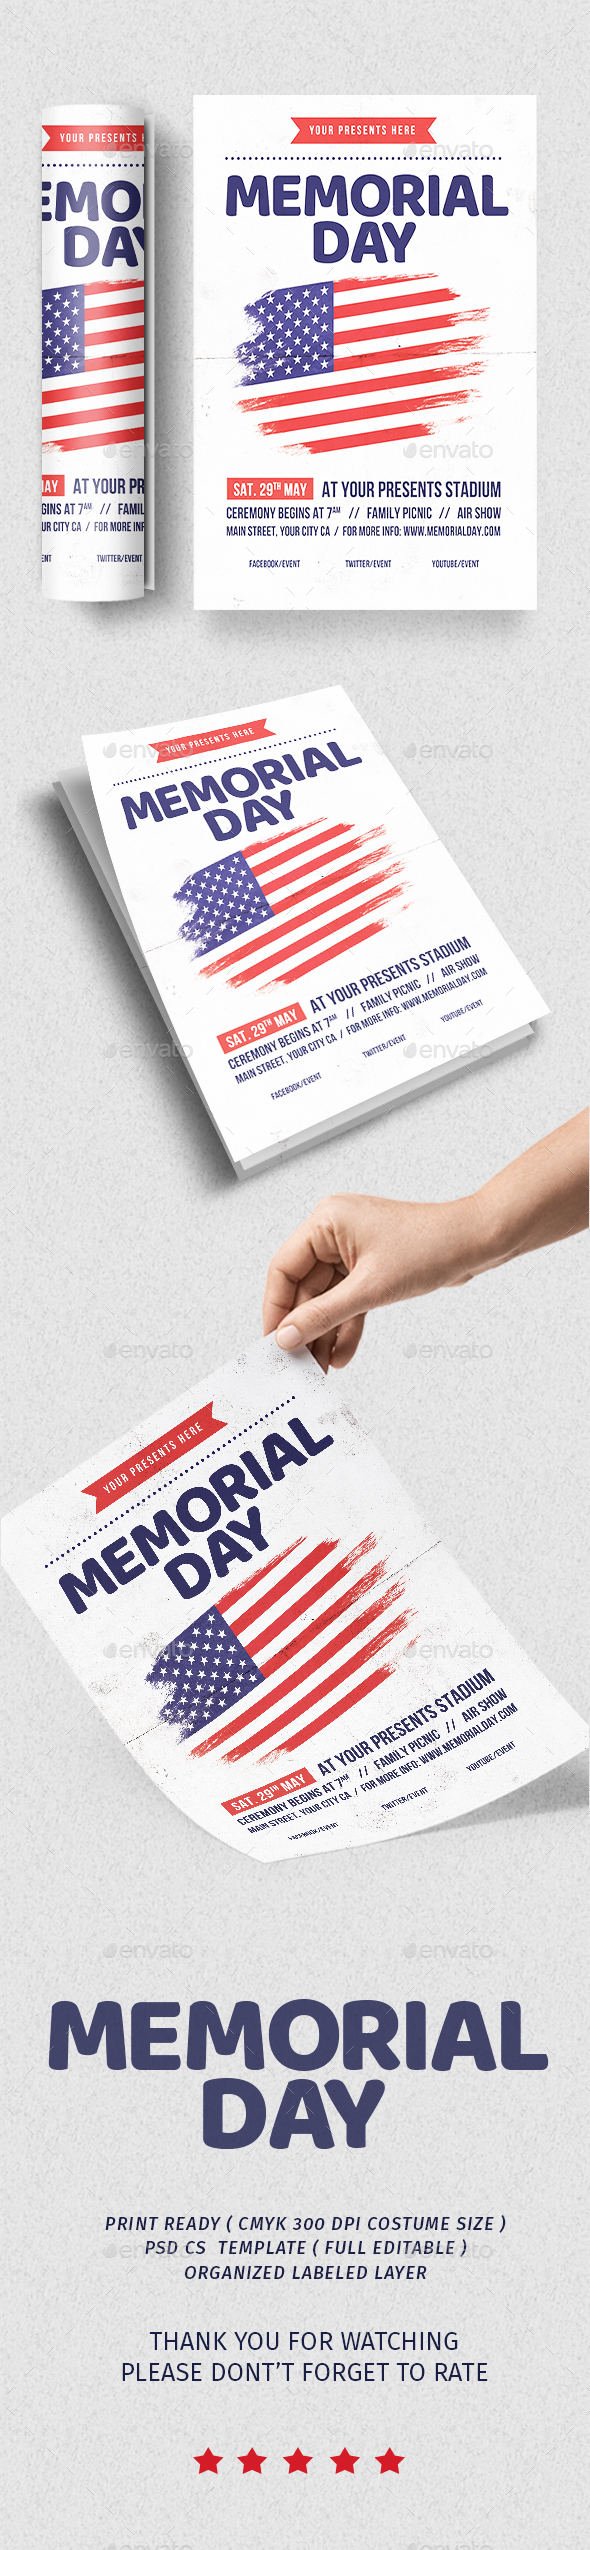 Memorial Day Flyer vol.2 - Flyers Print Templates